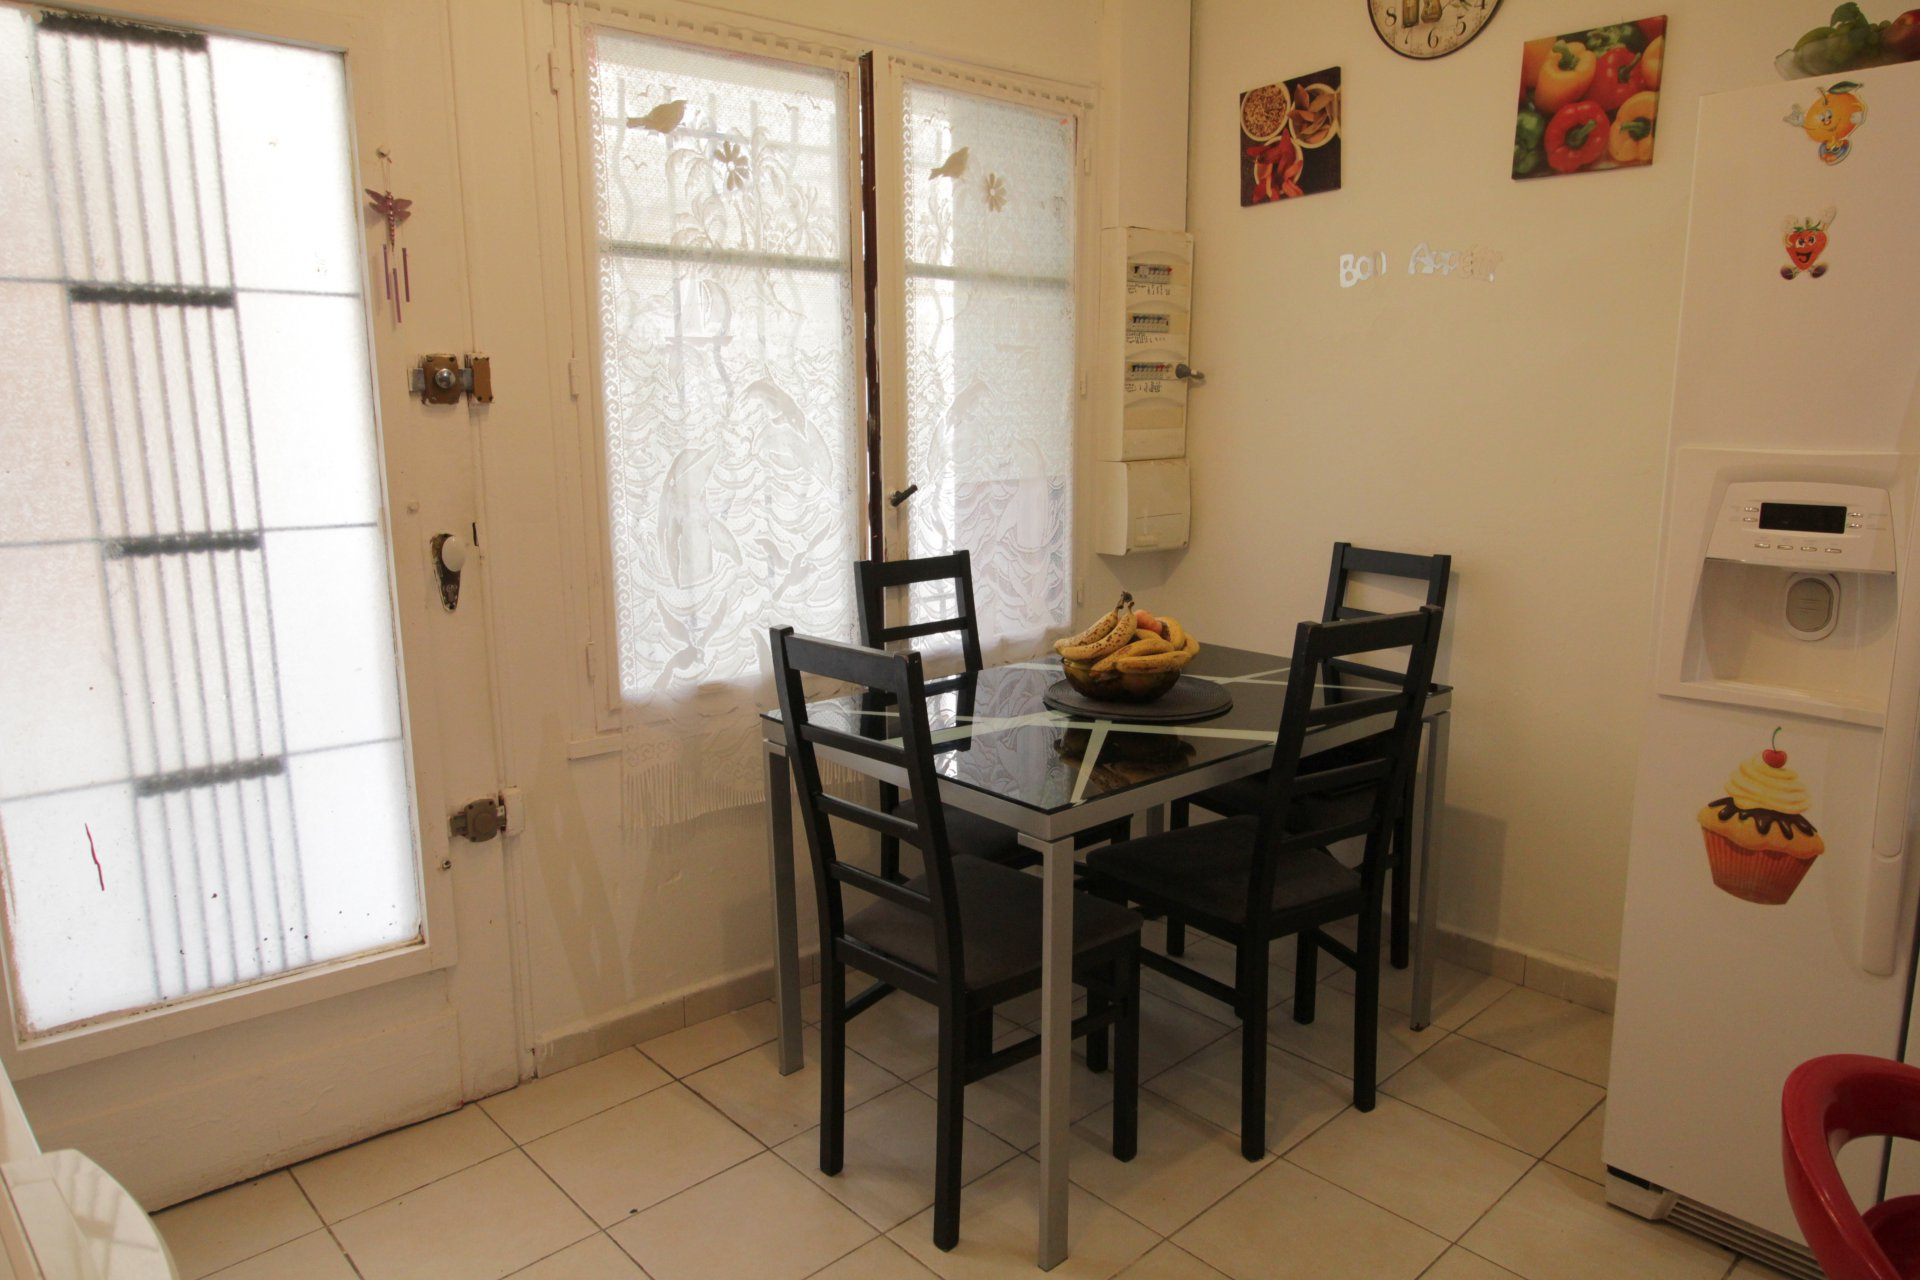 Townhouse for sale in Arles - La Roquette